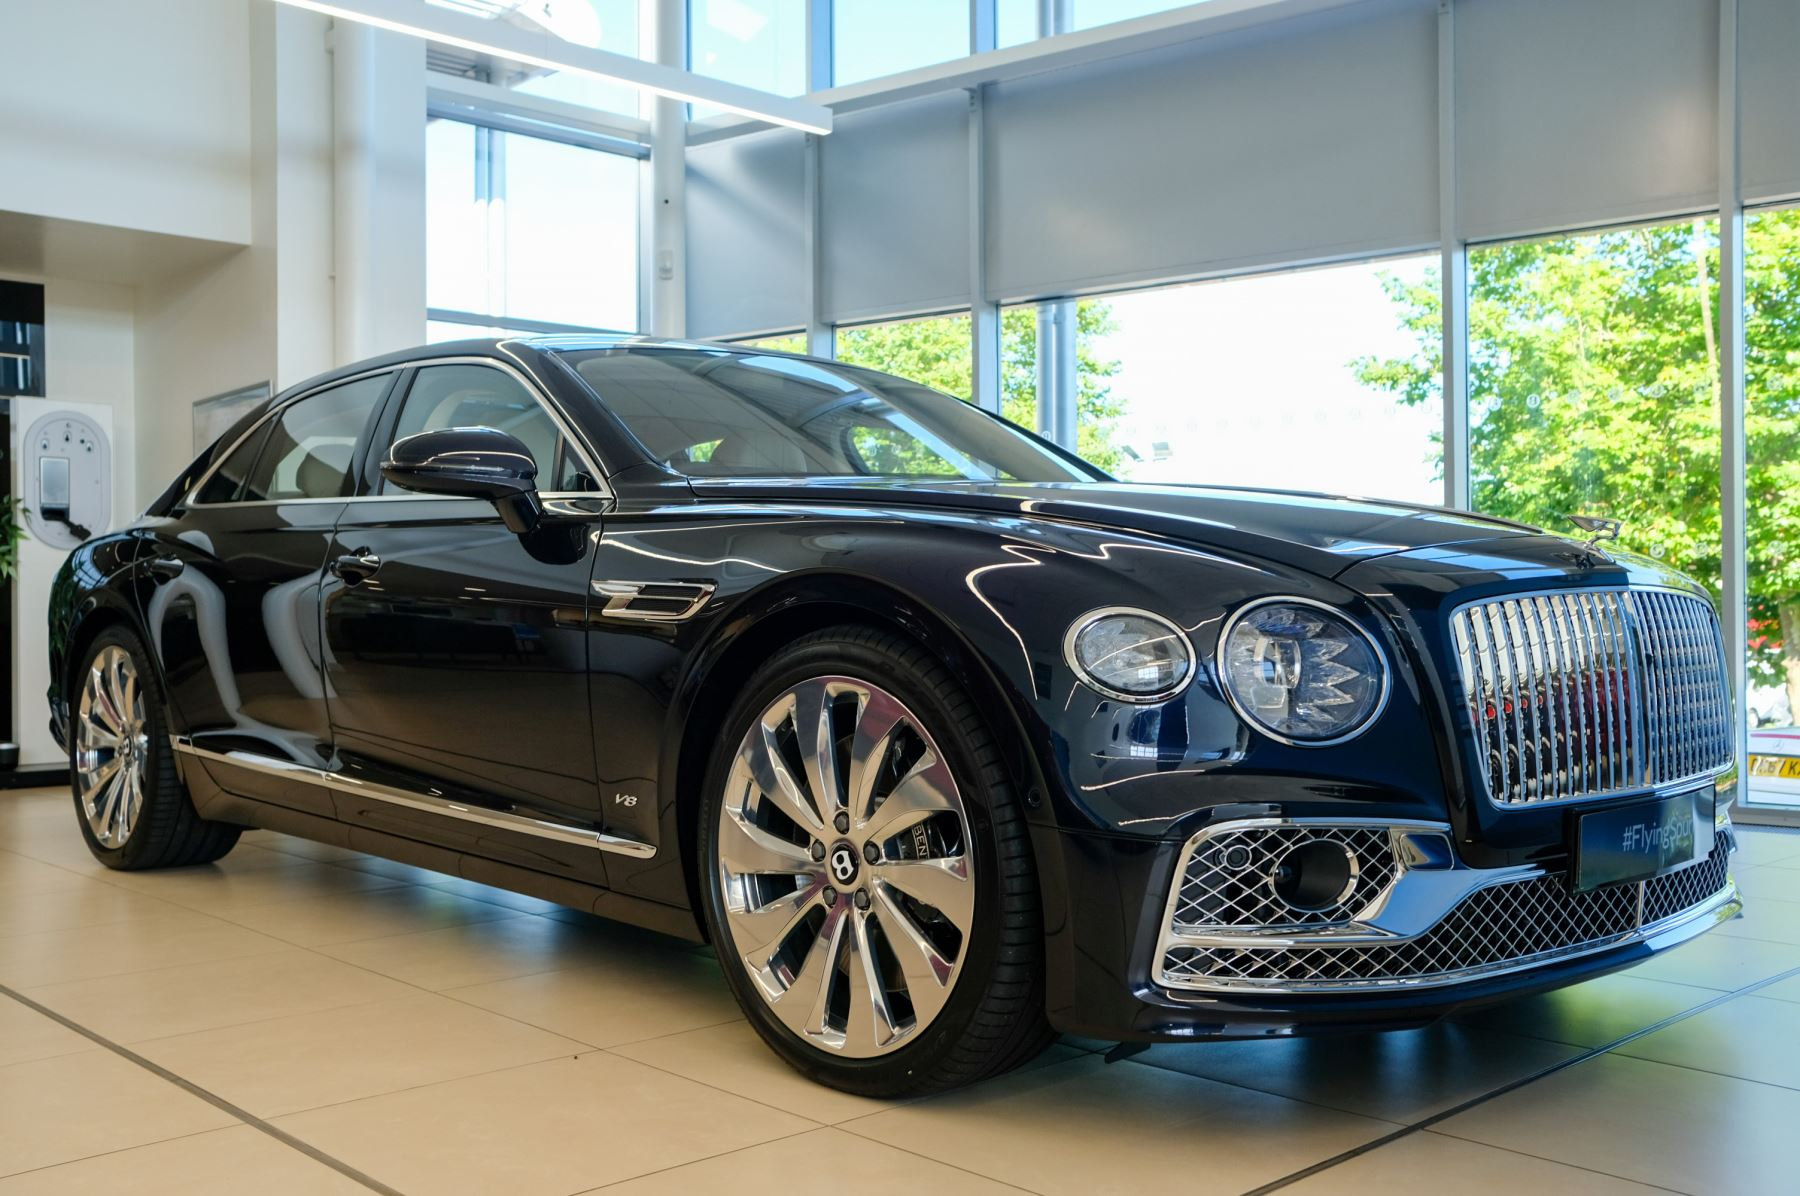 Bentley Flying Spur V8 4.0 V8 Mulliner Driving Spec 4dr Auto [Tour Spec] - Rotating Display - Panoramic Roof Automatic Saloon